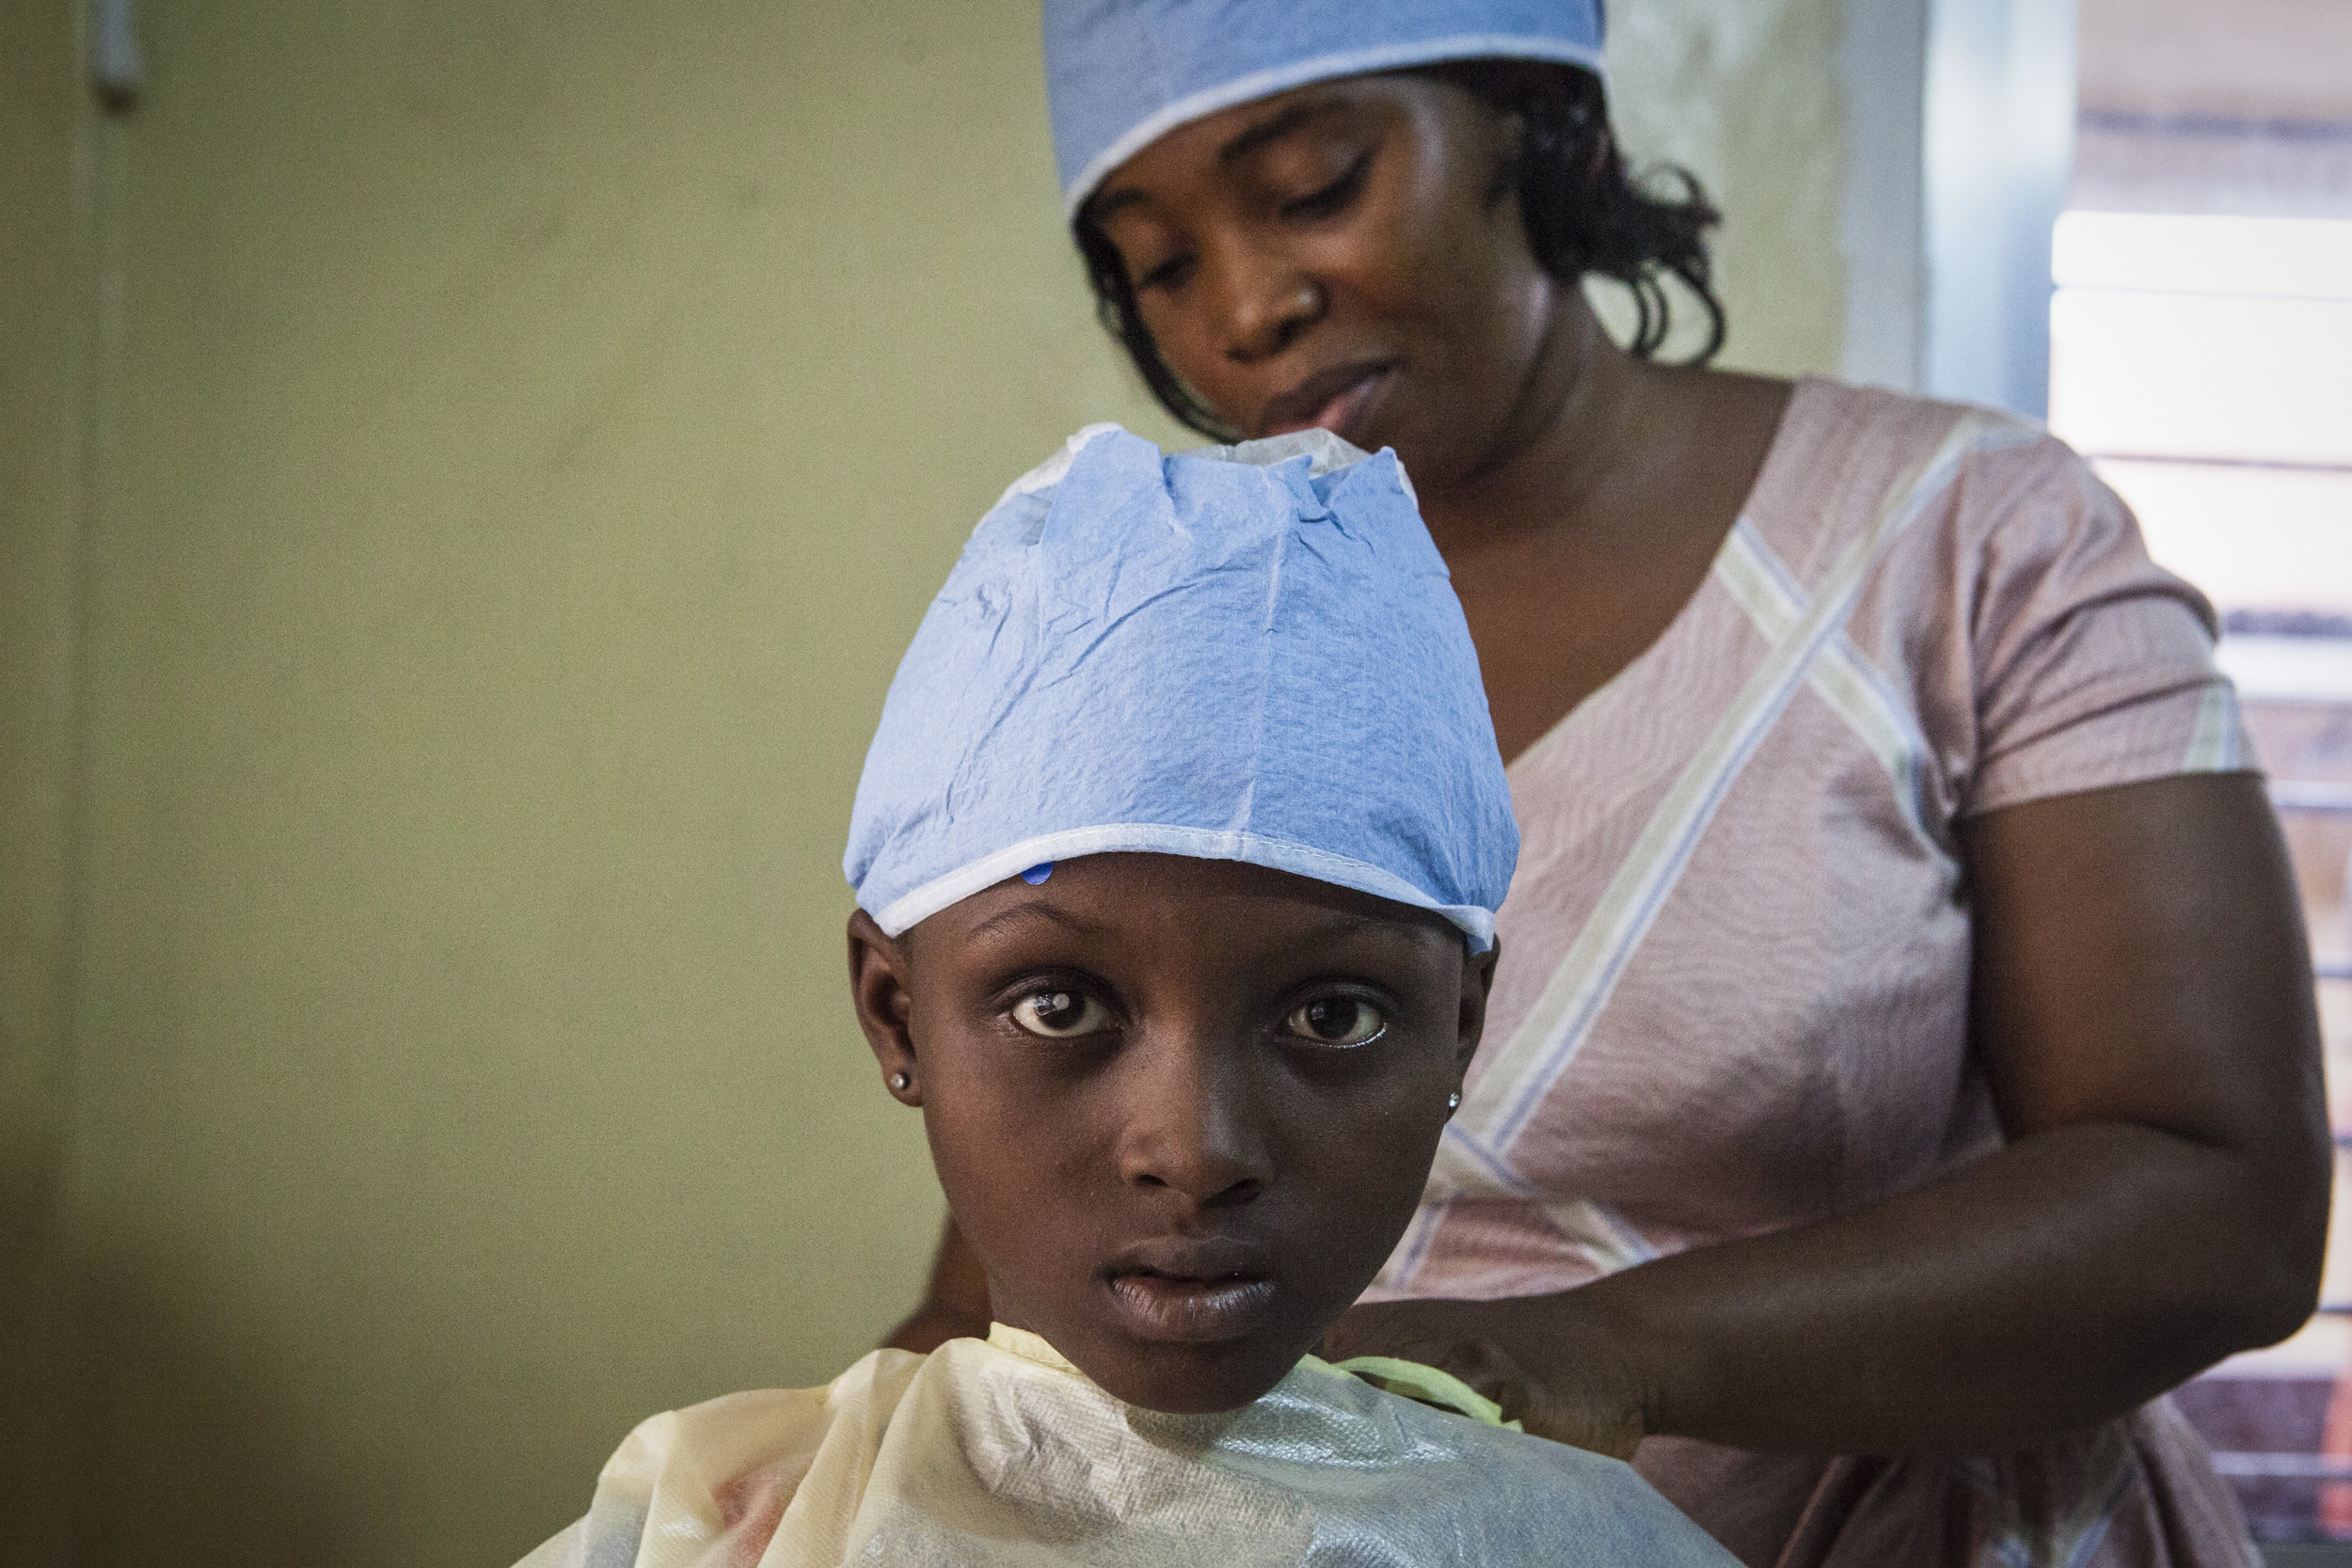 Aminata Conteh, 8, puts on a hospital gown before doctors remove fluid from her problematic right eye for testing at the Kissy United Methodist Church Eye Hospital in Freetown, Sierra Leone. Long after recovering from the largest Ebola outbreak in history, survivors continue to experience debilitating complications including uvetis, an inflammation of the eye, leading to severe cataracts leaving the survivor with little to no sight in the affected eye.